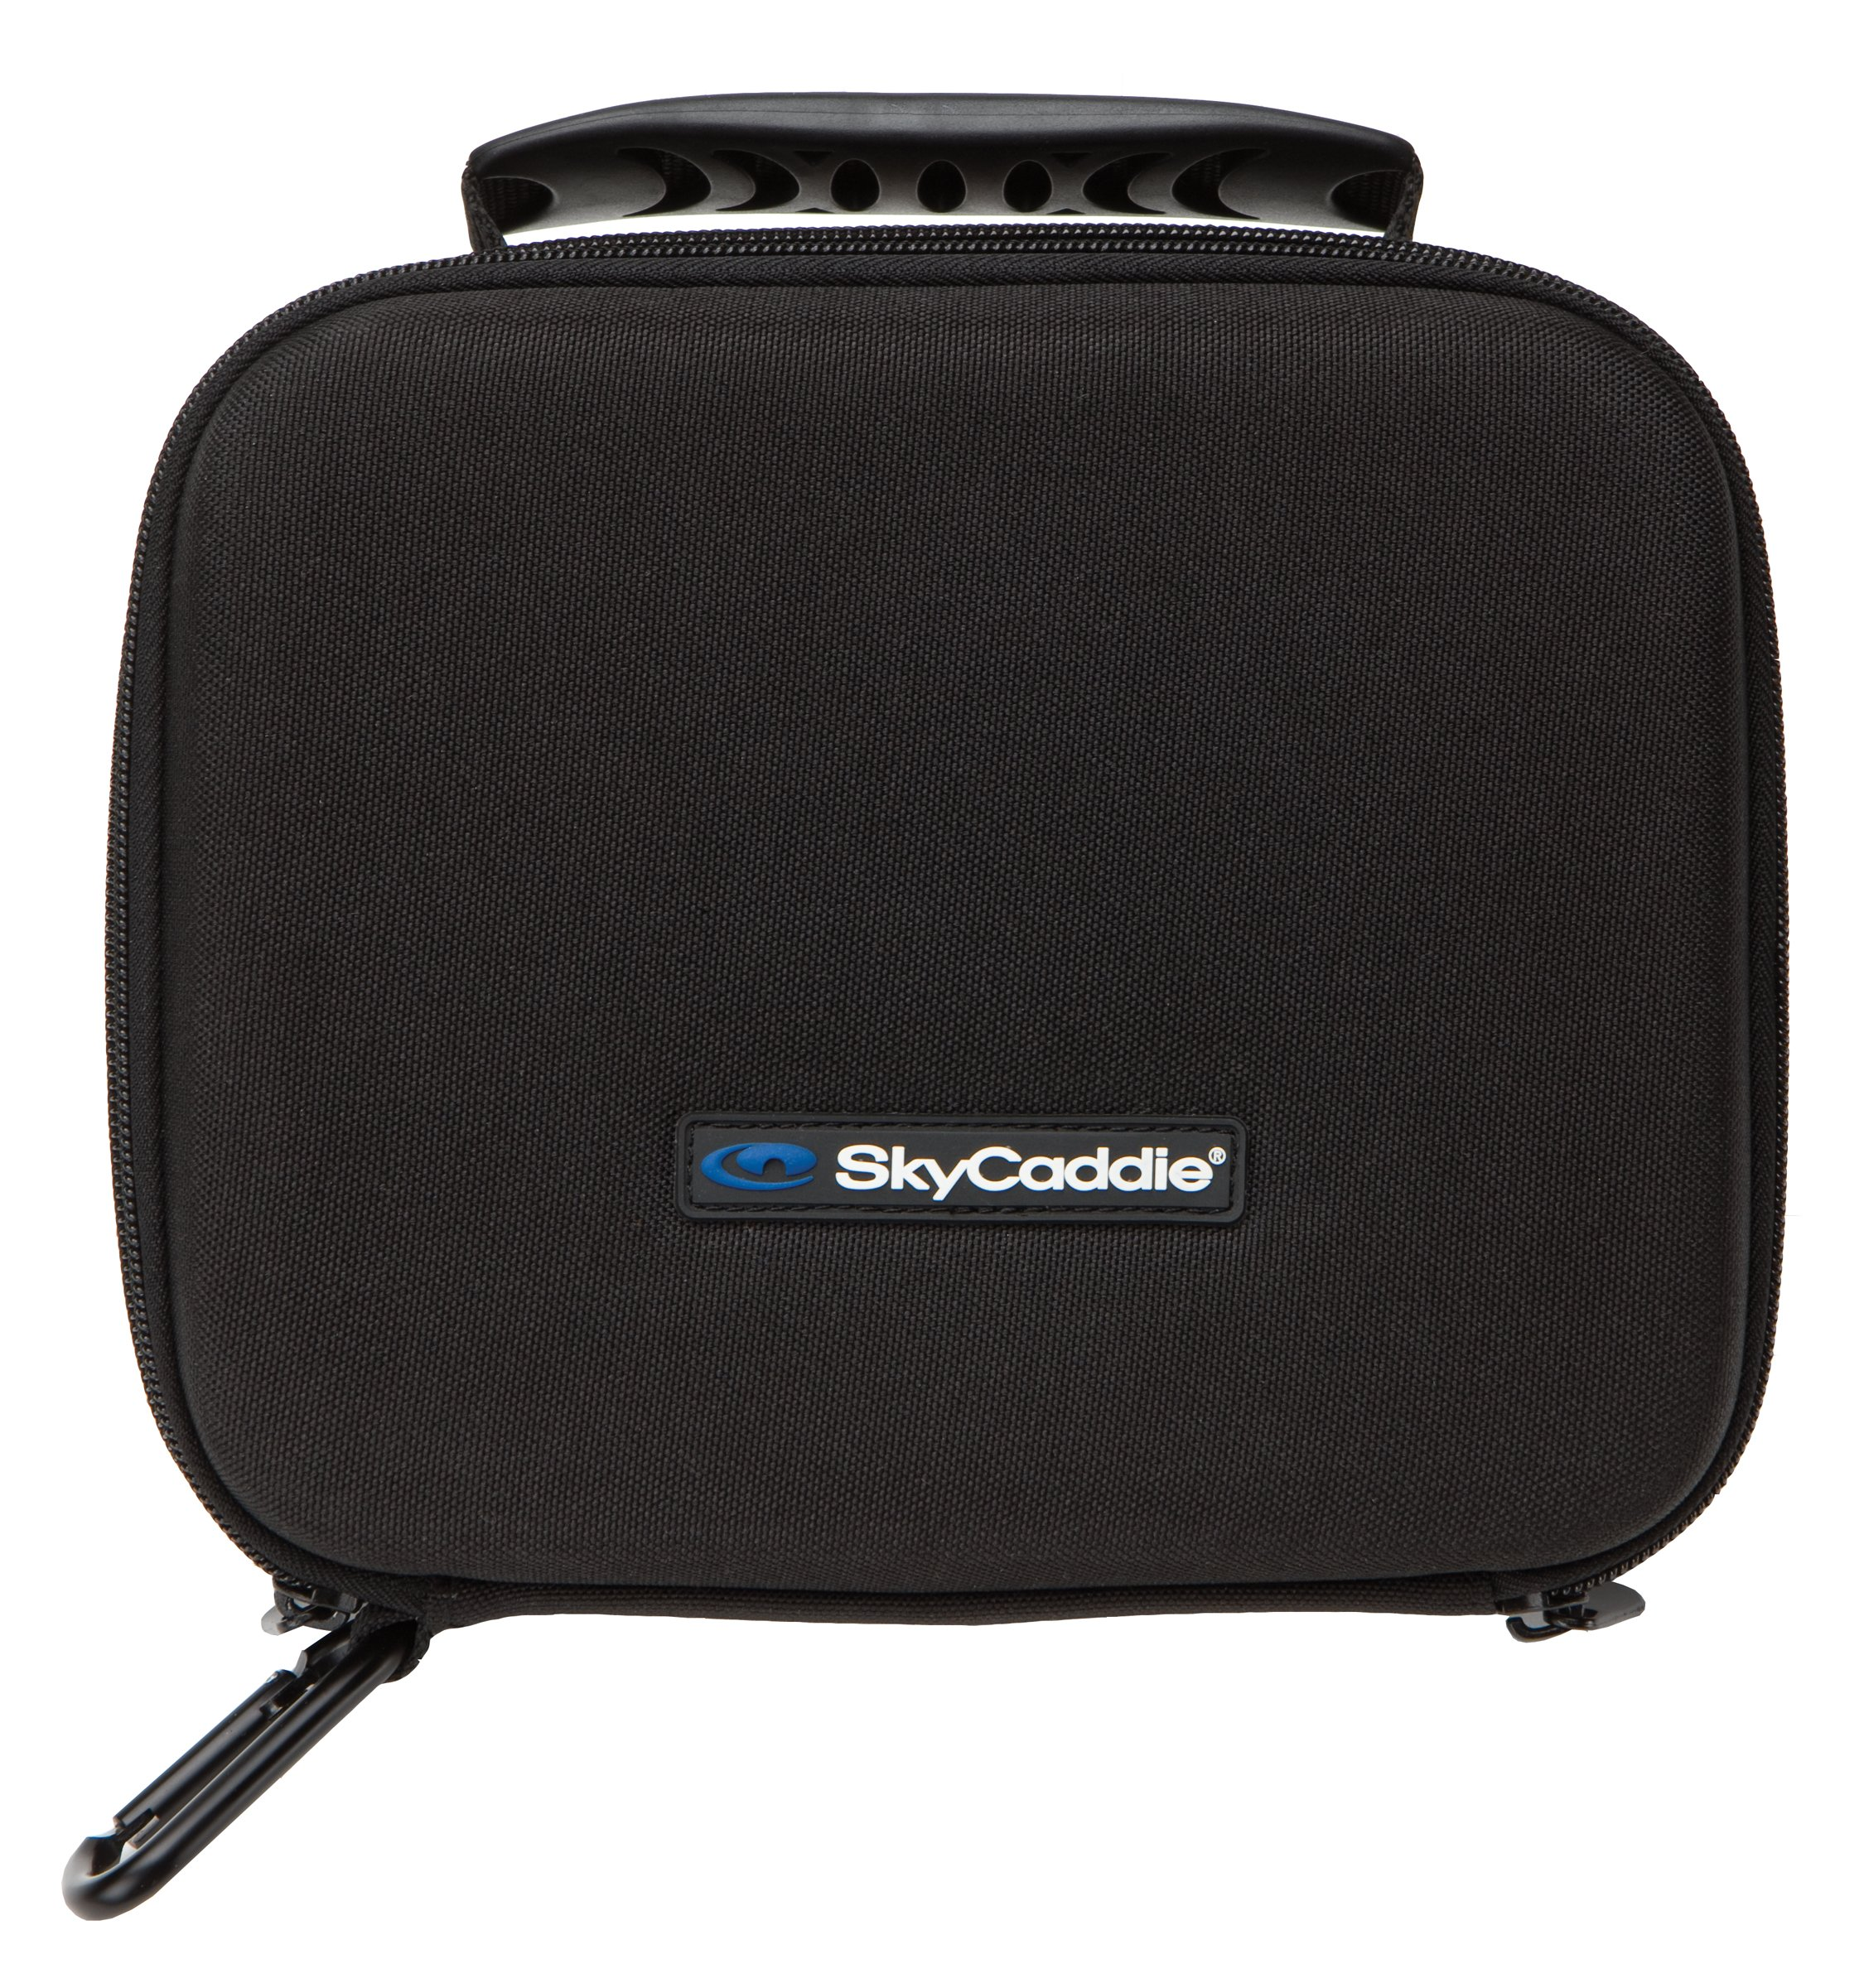 Skycaddie Golf Travel Case by SkyCaddie